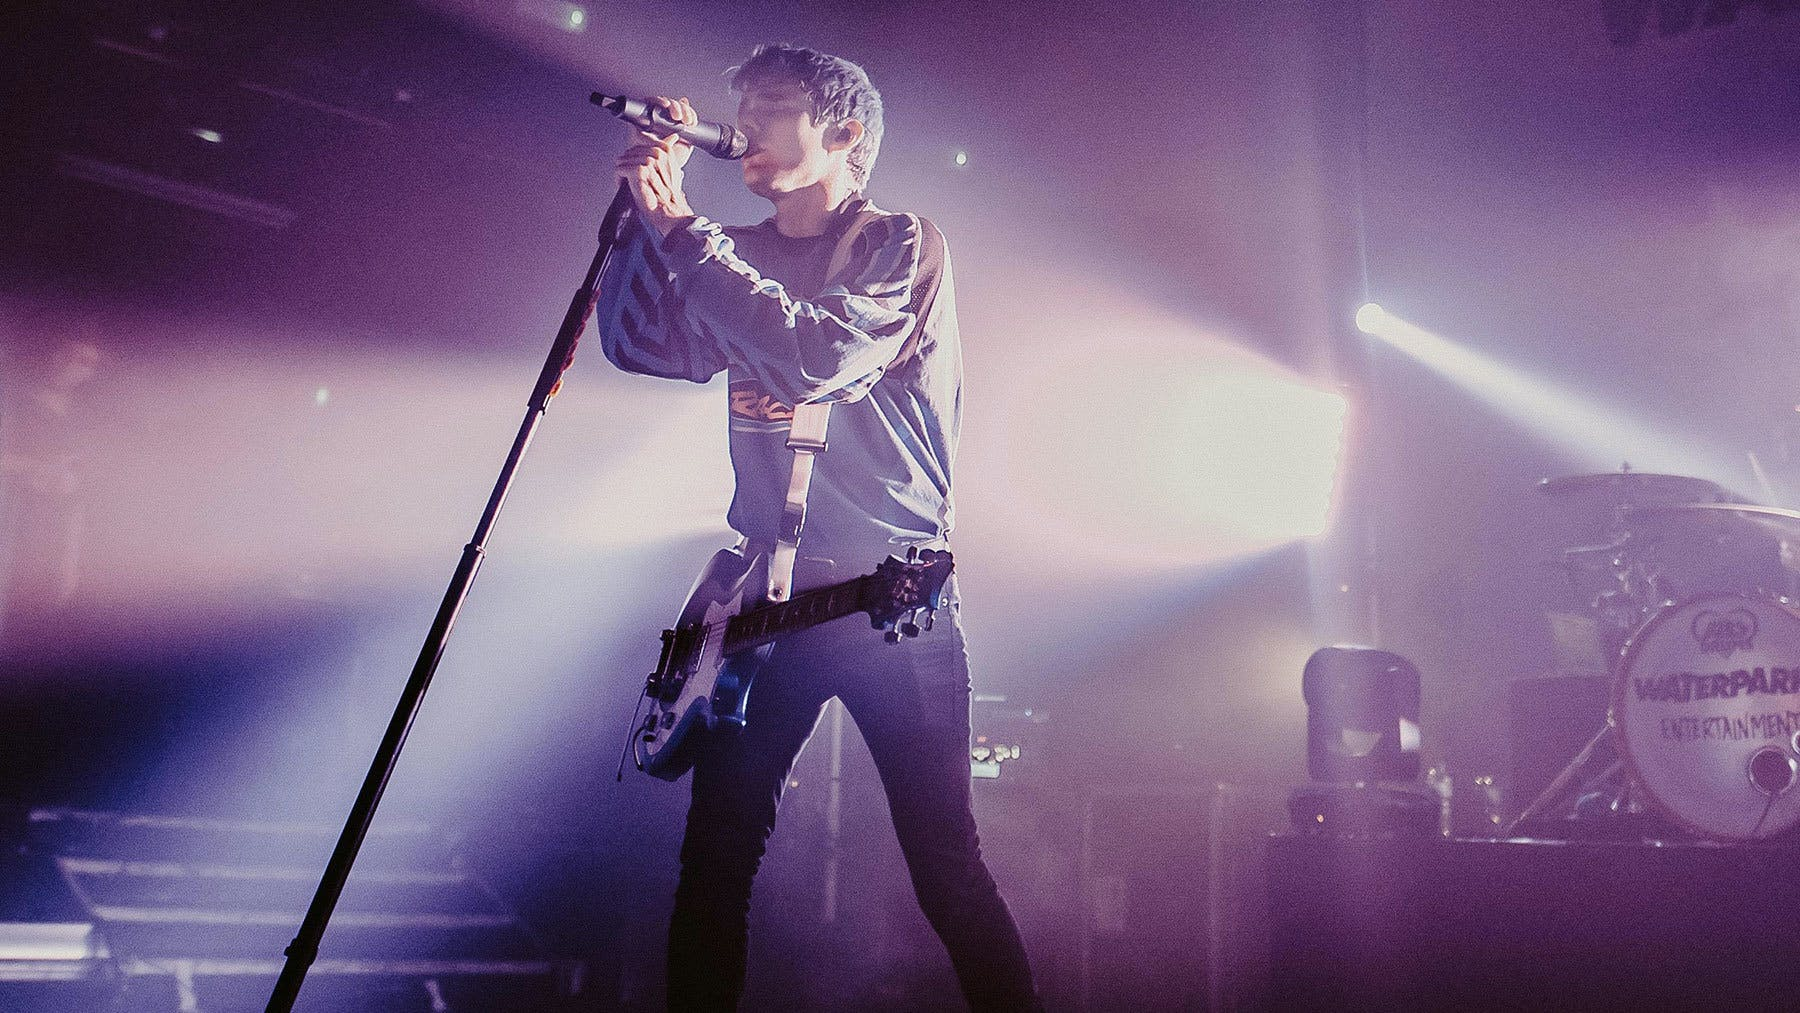 Waterparks' Awsten Knight: The 10 Songs That Changed My Life